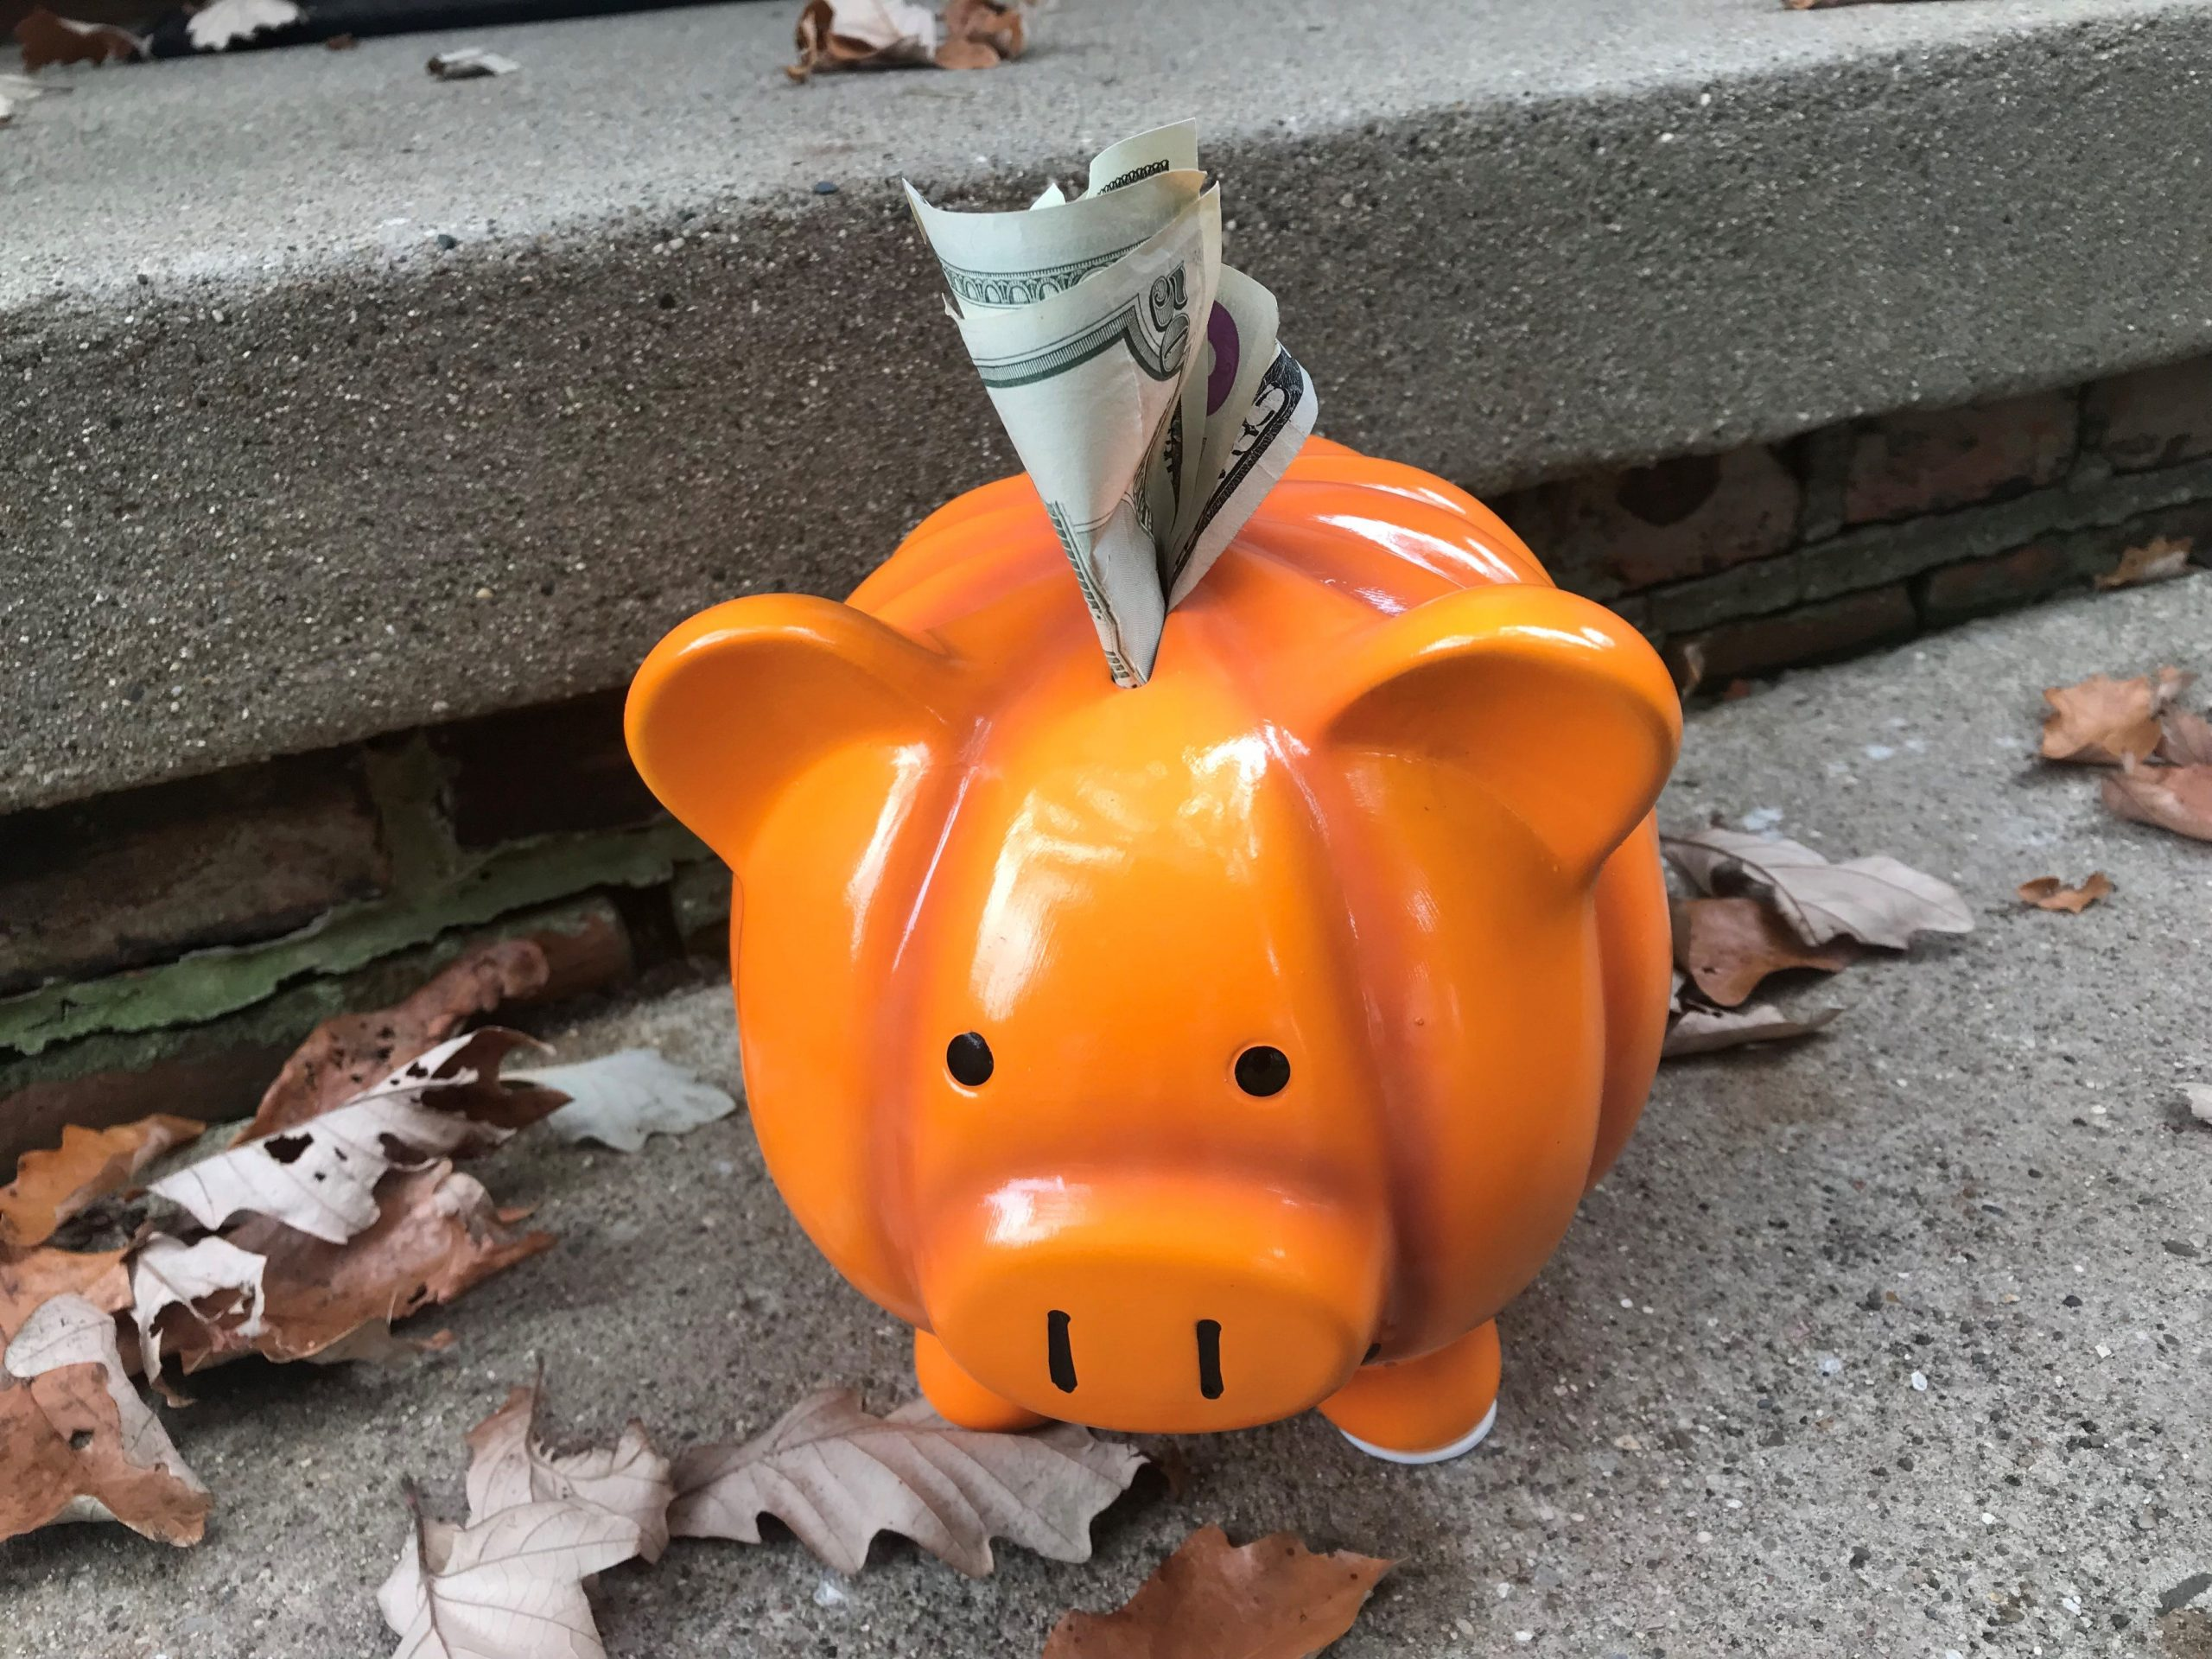 When can you expect your October child tax credit payment?